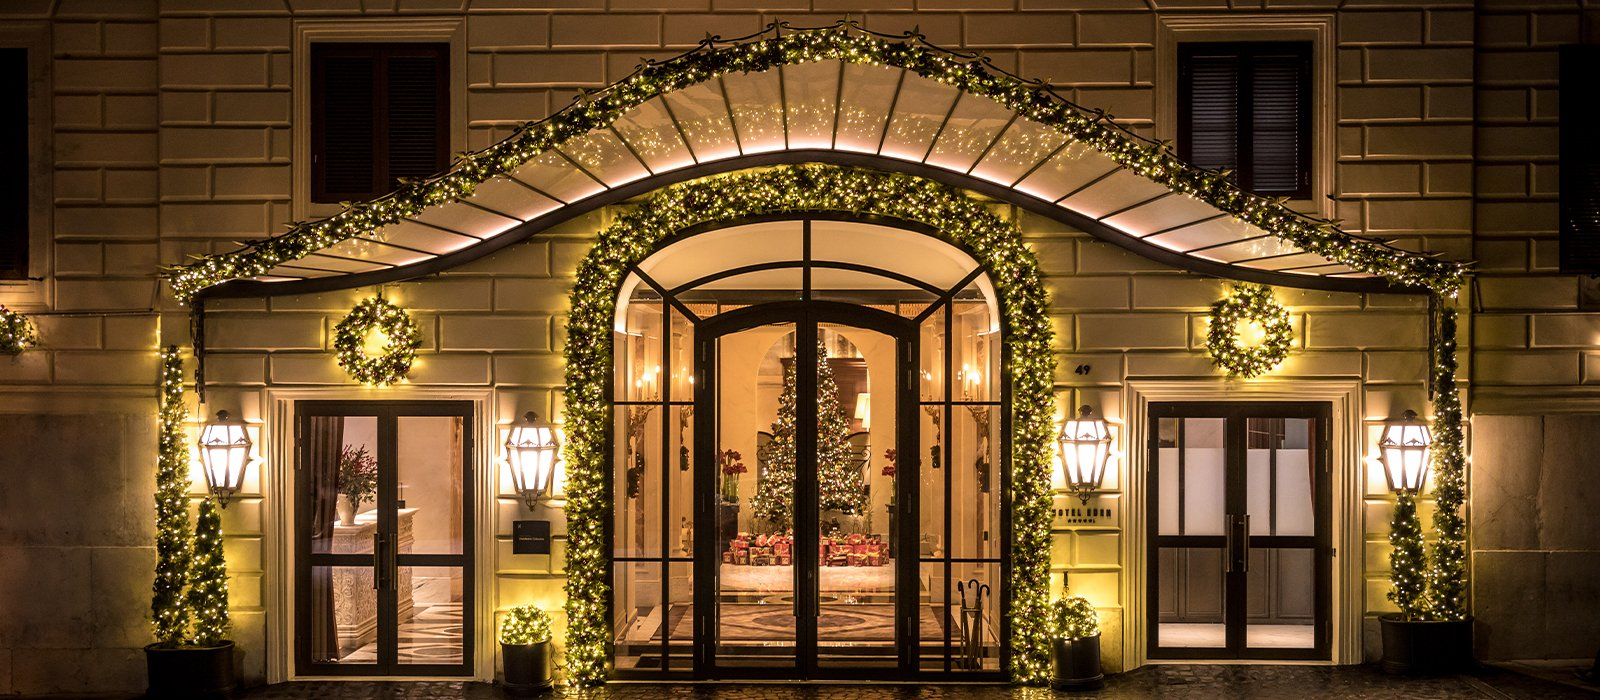 Best Hotel That Serves Christmas Eve Dinner In Rome 2020 Festive Season at Hotel Eden | Dorchester Collection